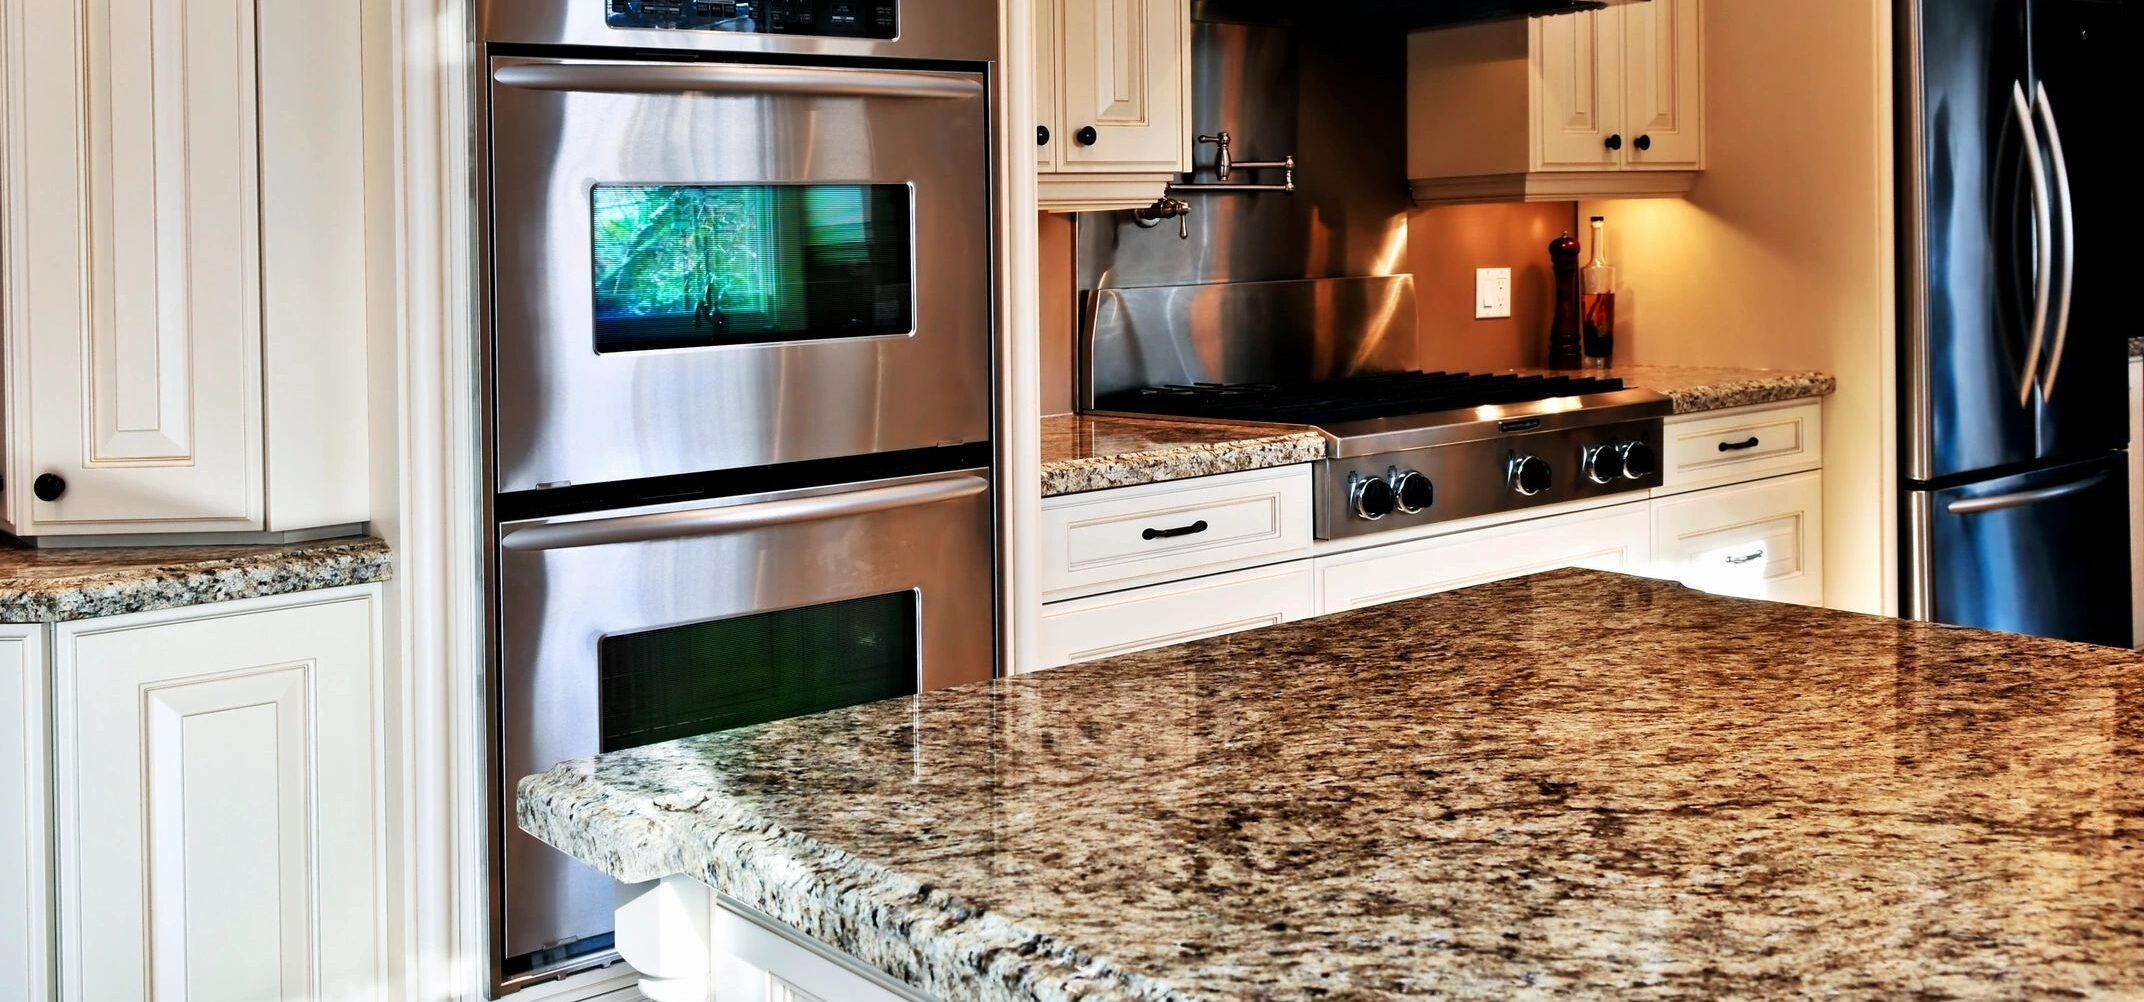 WE OFFER QUALITY STONES IN A WIDE VARIETY OF SIZES AND COLORS